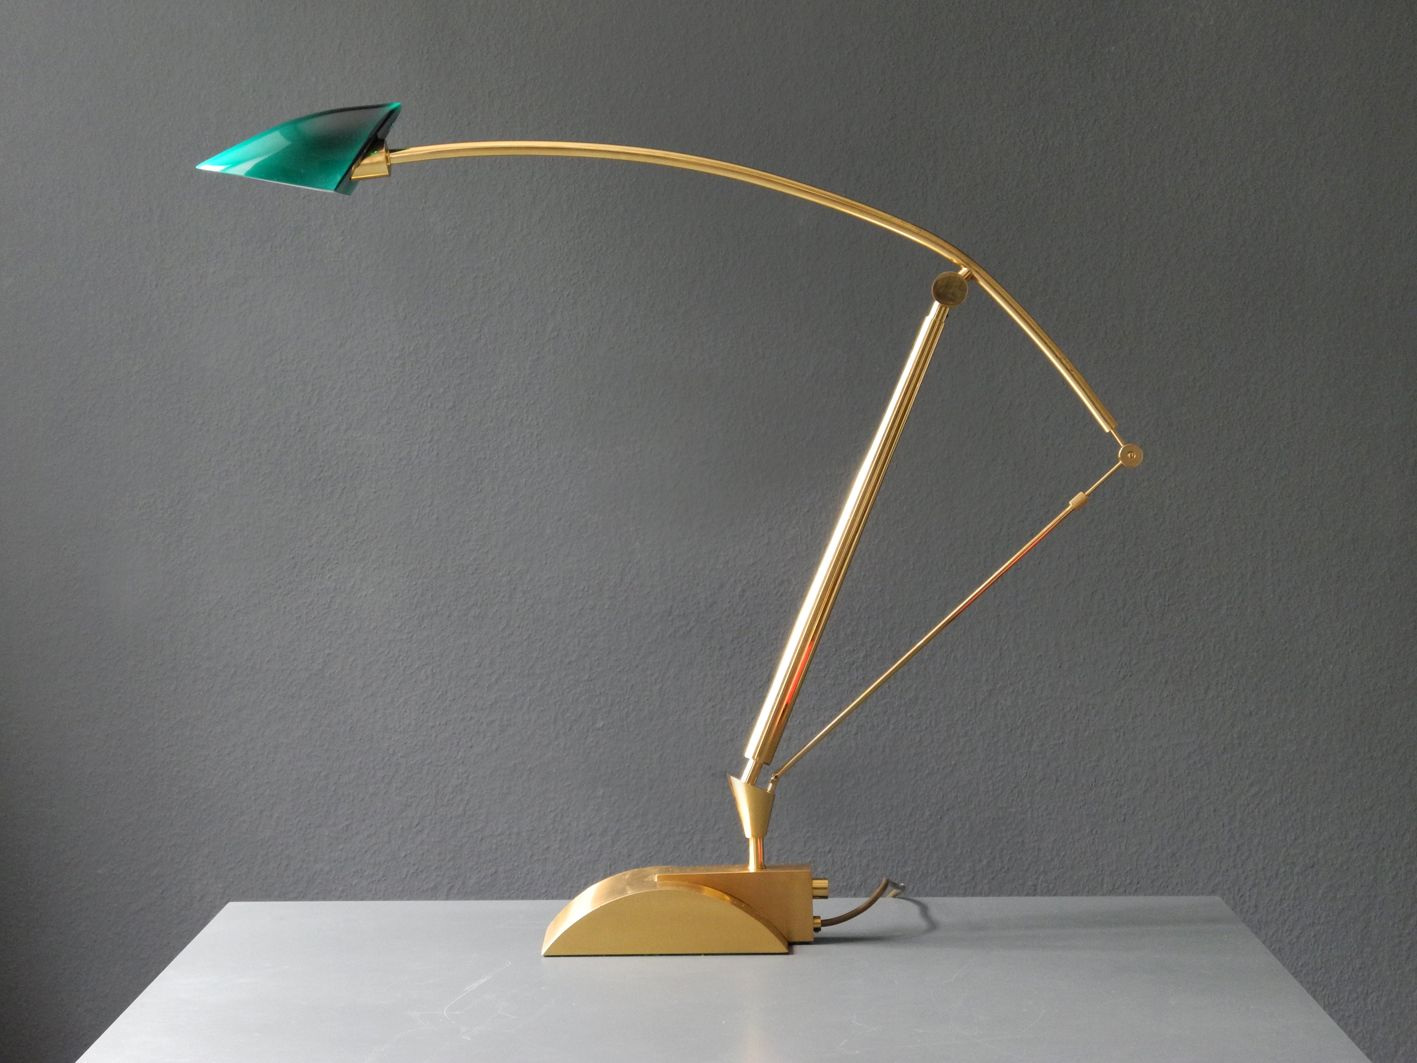 Large adjustable brass halogen table lamp with green glass shade large adjustable brass halogen table lamp with green glass shade 1980s mozeypictures Image collections